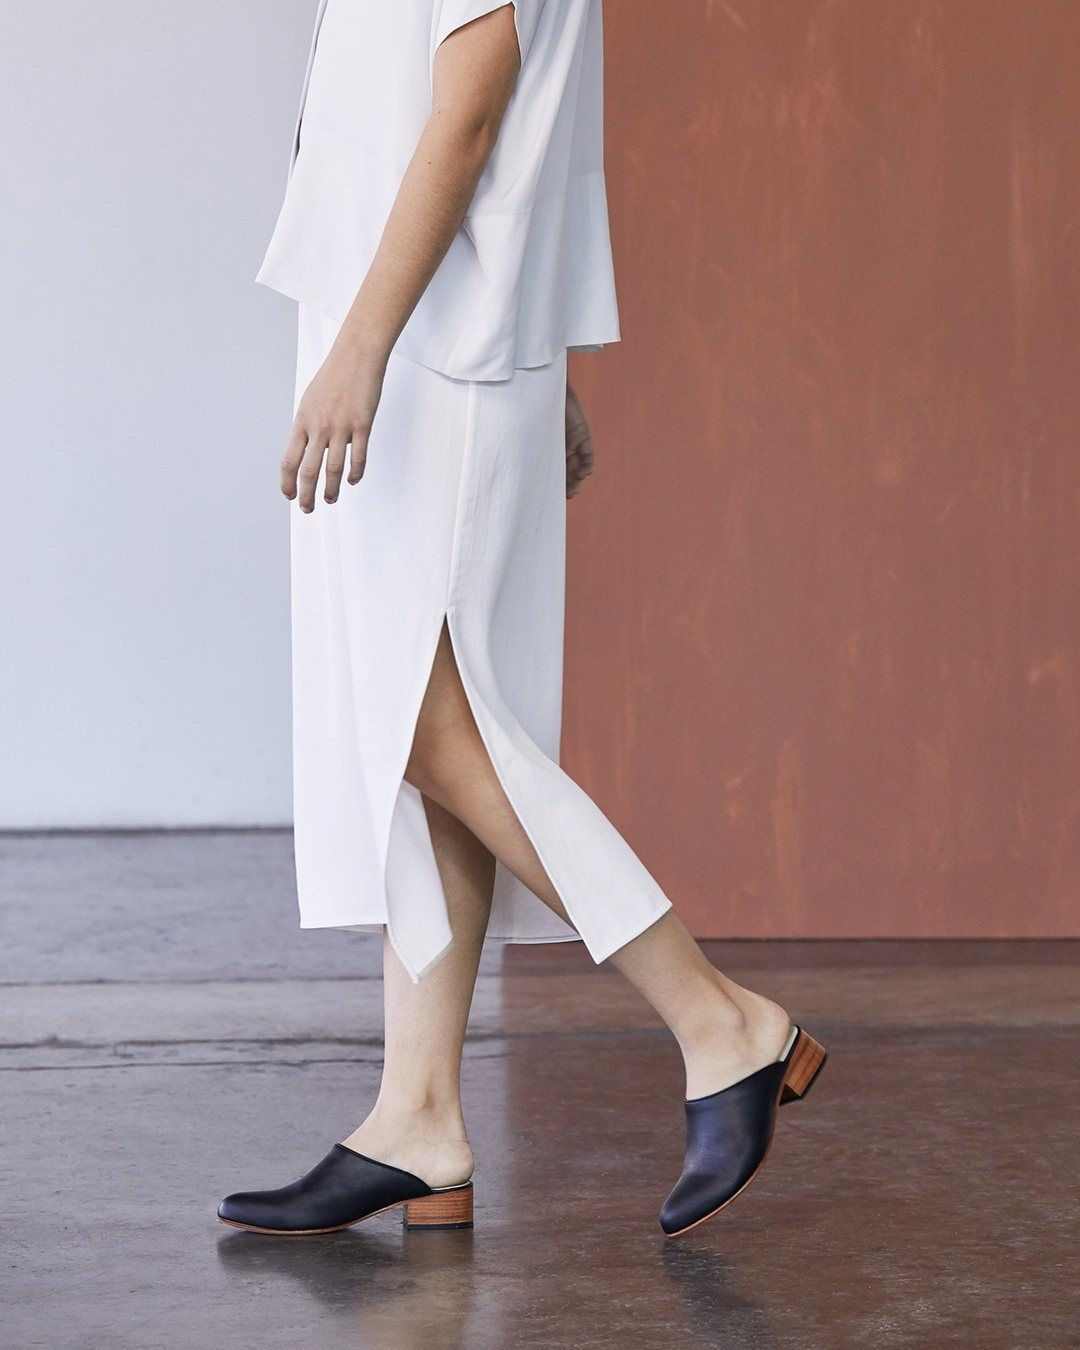 model wearing the mules in black. They completely cover the toes and the top of the foot and they have an exposed ankle and small natural wood heel.